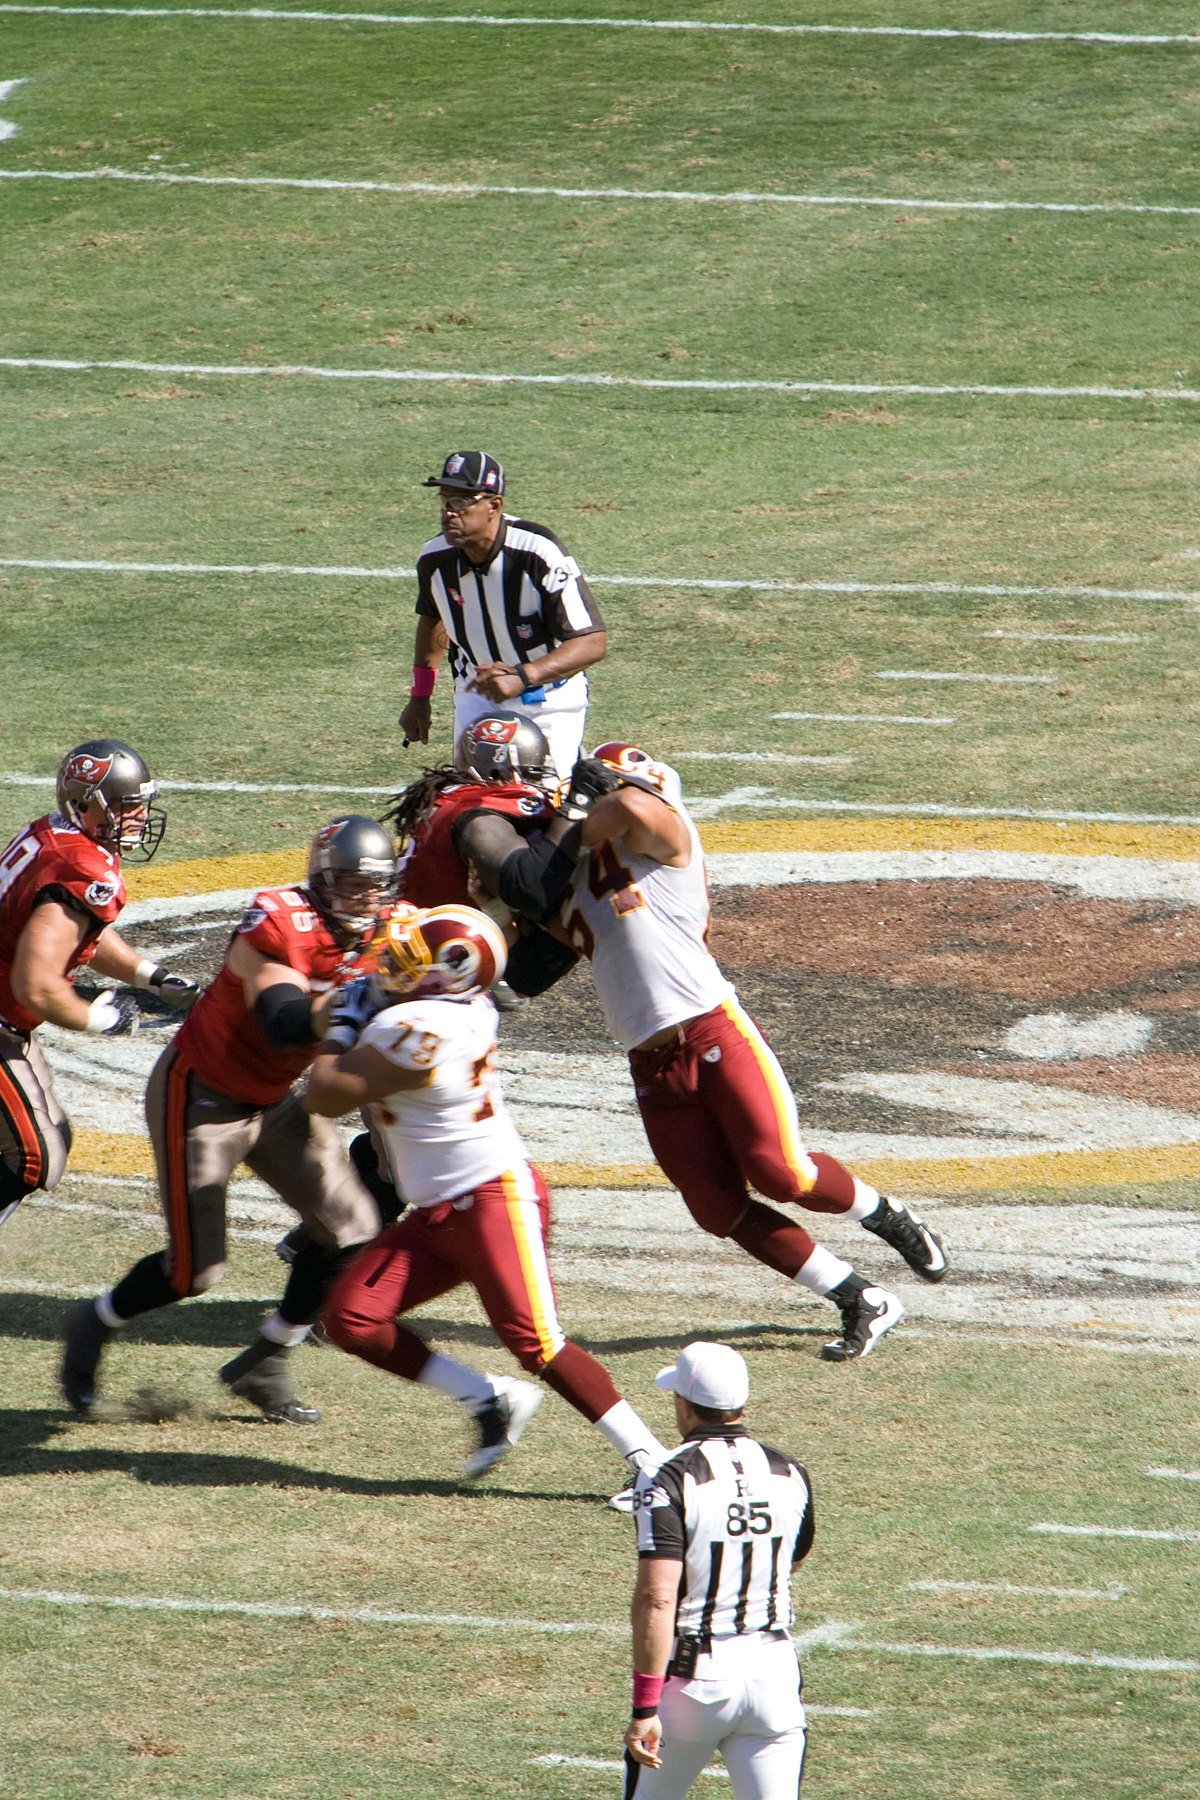 2009 Washington Redskins season - Wikipedia